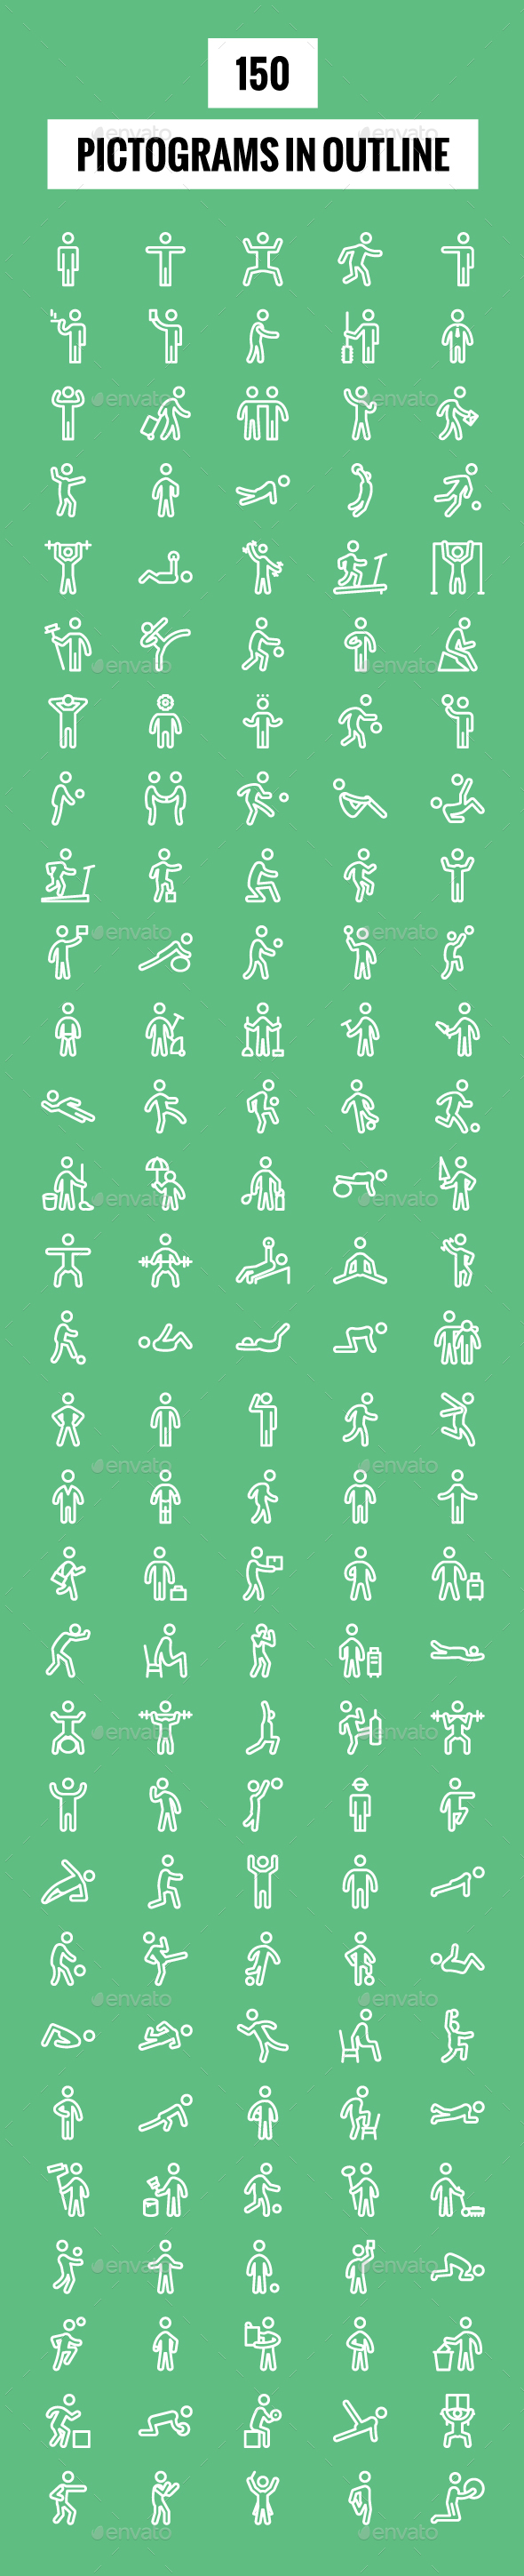 150 Pictograms in Outline - Icons